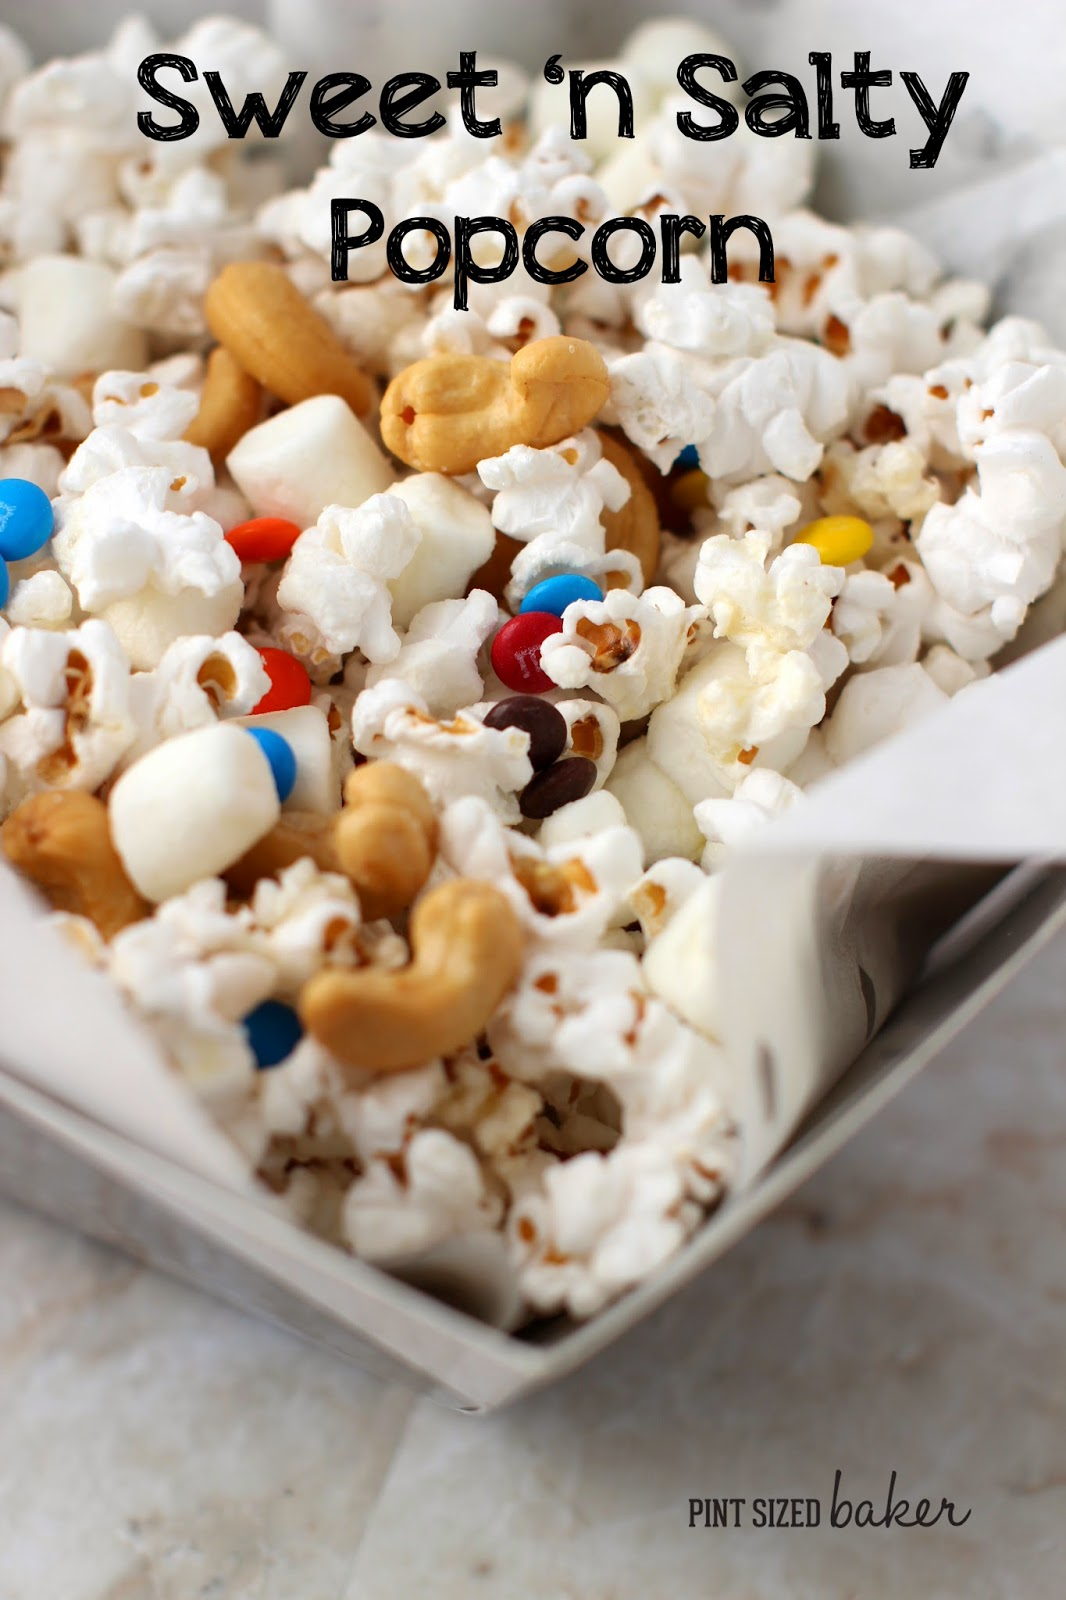 Sweet and Salty is the perfect combination! Salty Cashews with sweet mini marshmallows and M&M's. Perfect for snacking on during the game!